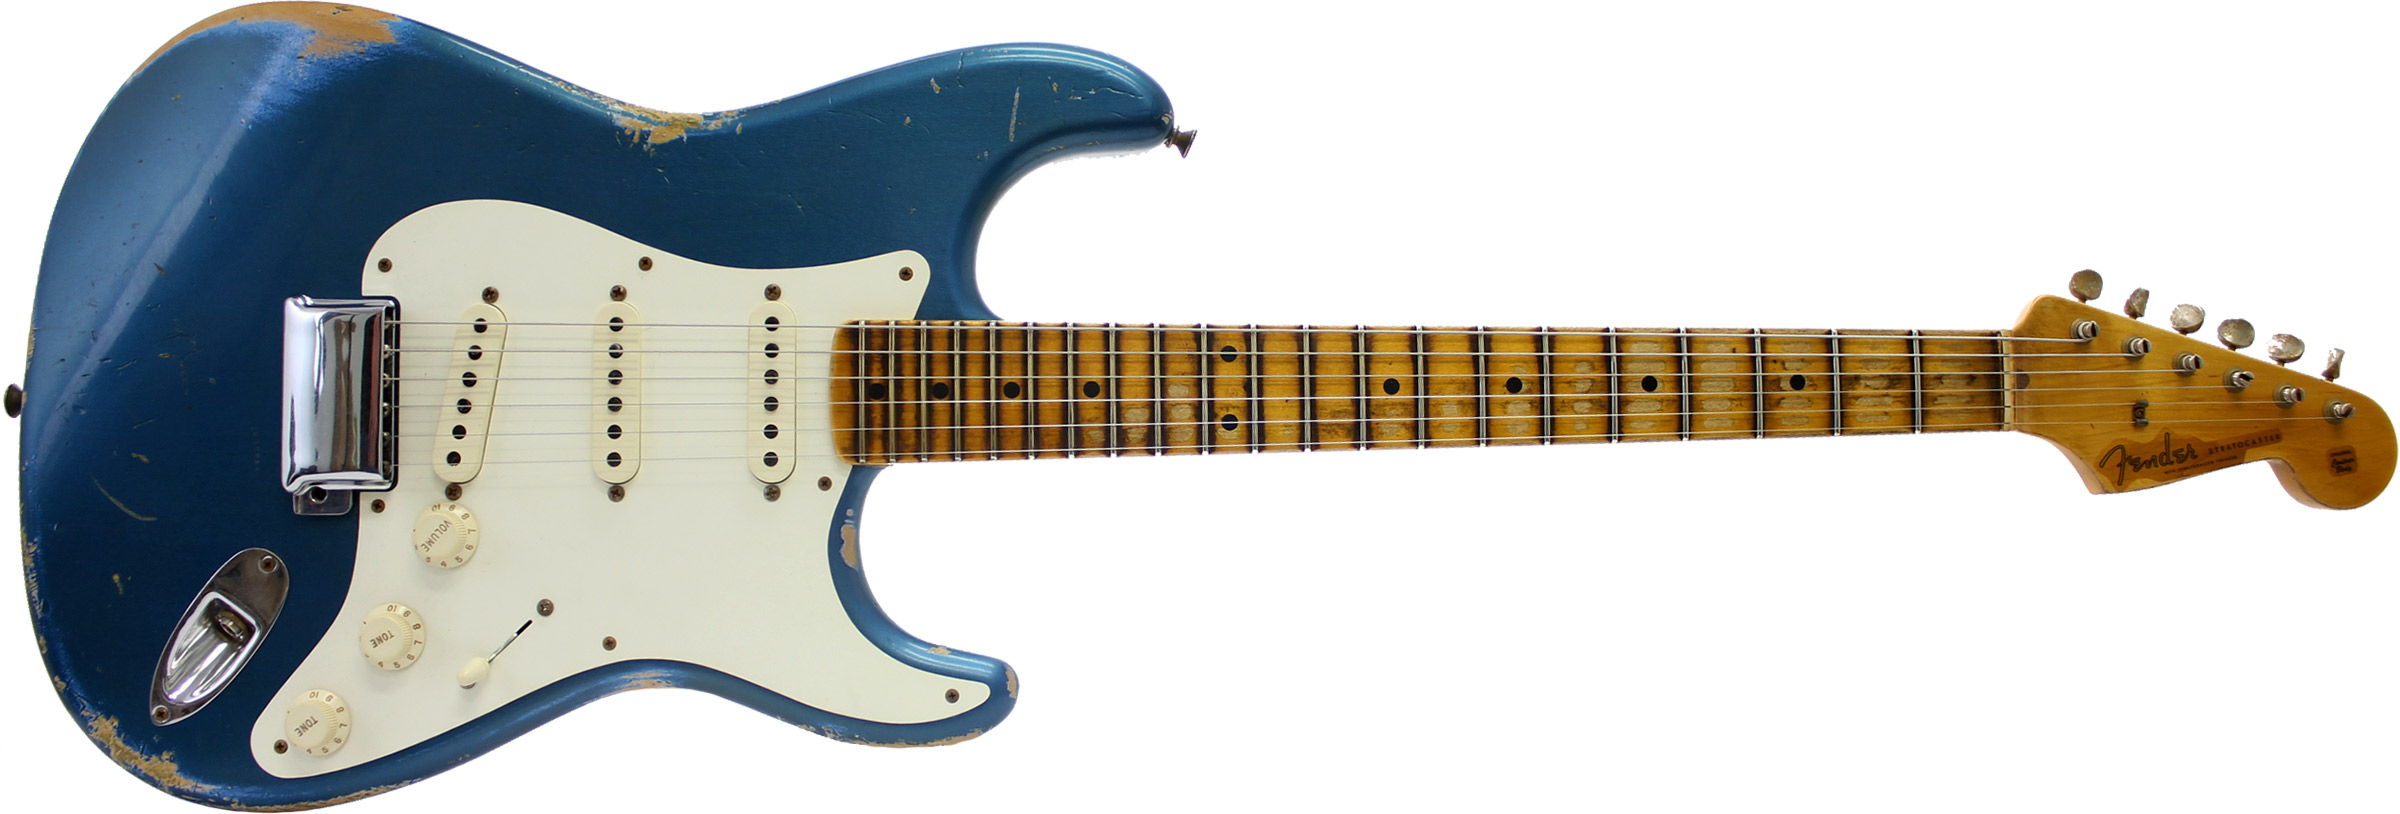 GUITARRA FENDER 56 STRATOCASTER HEAVY RELIC TIME MACHINE 151-1602-802 AGED LAKE PLACID BLUE